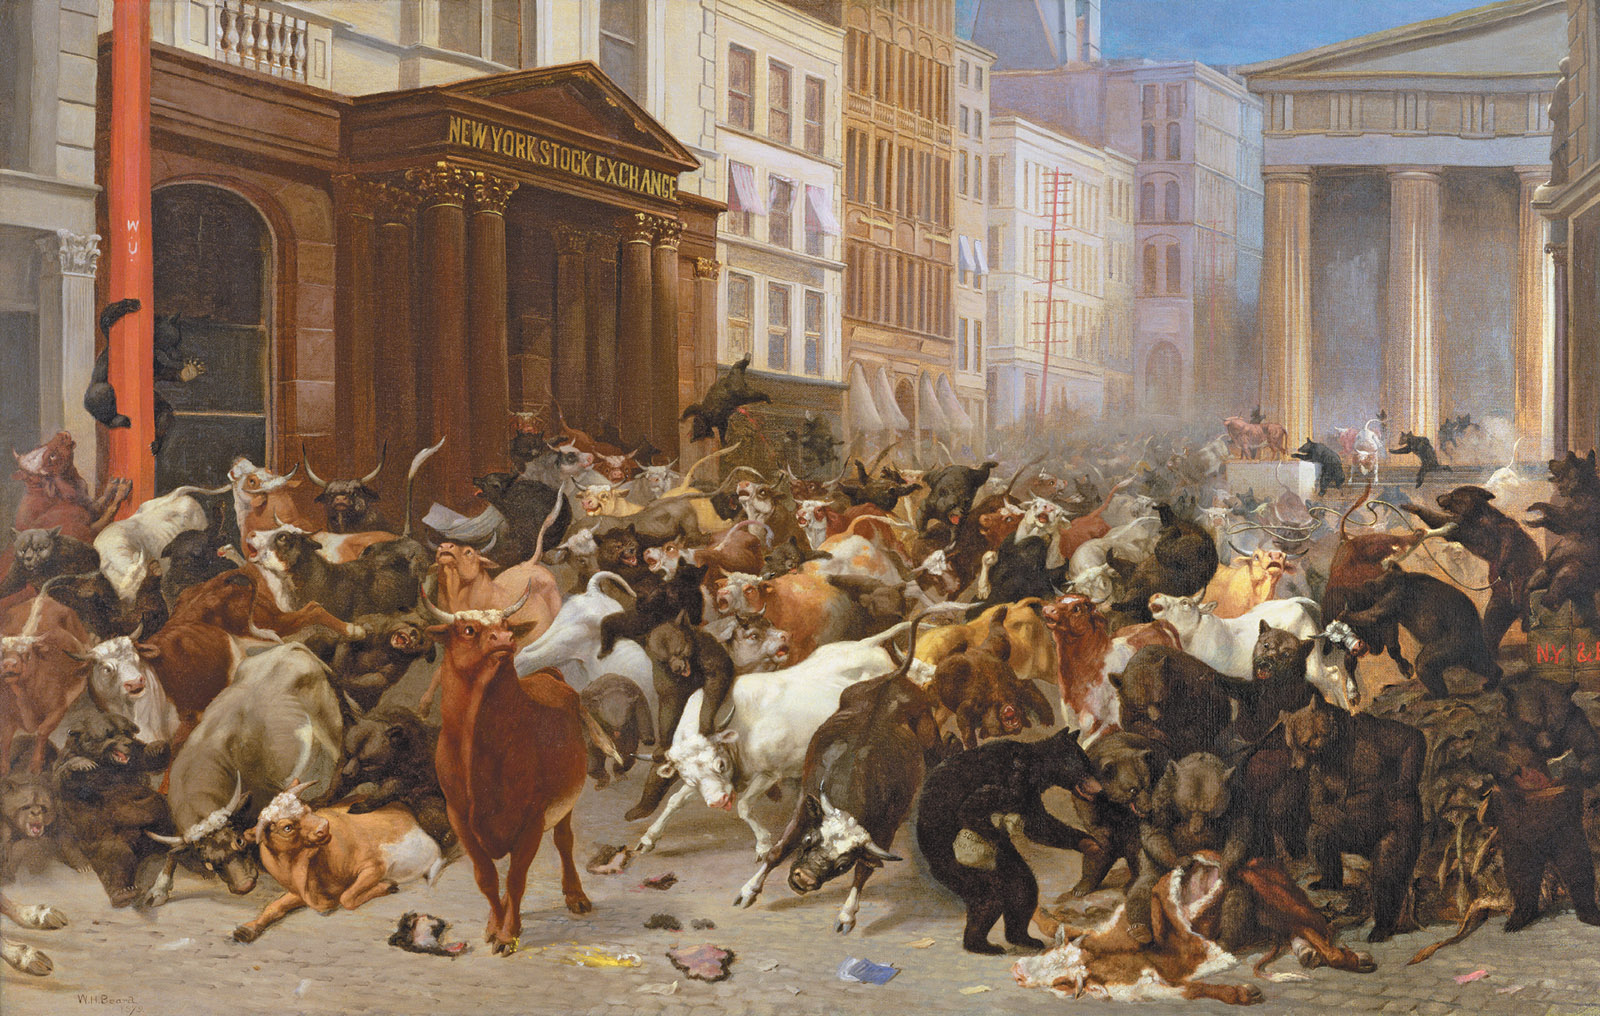 The Bulls and Bears in the Market; painting by William Holbrook Beard